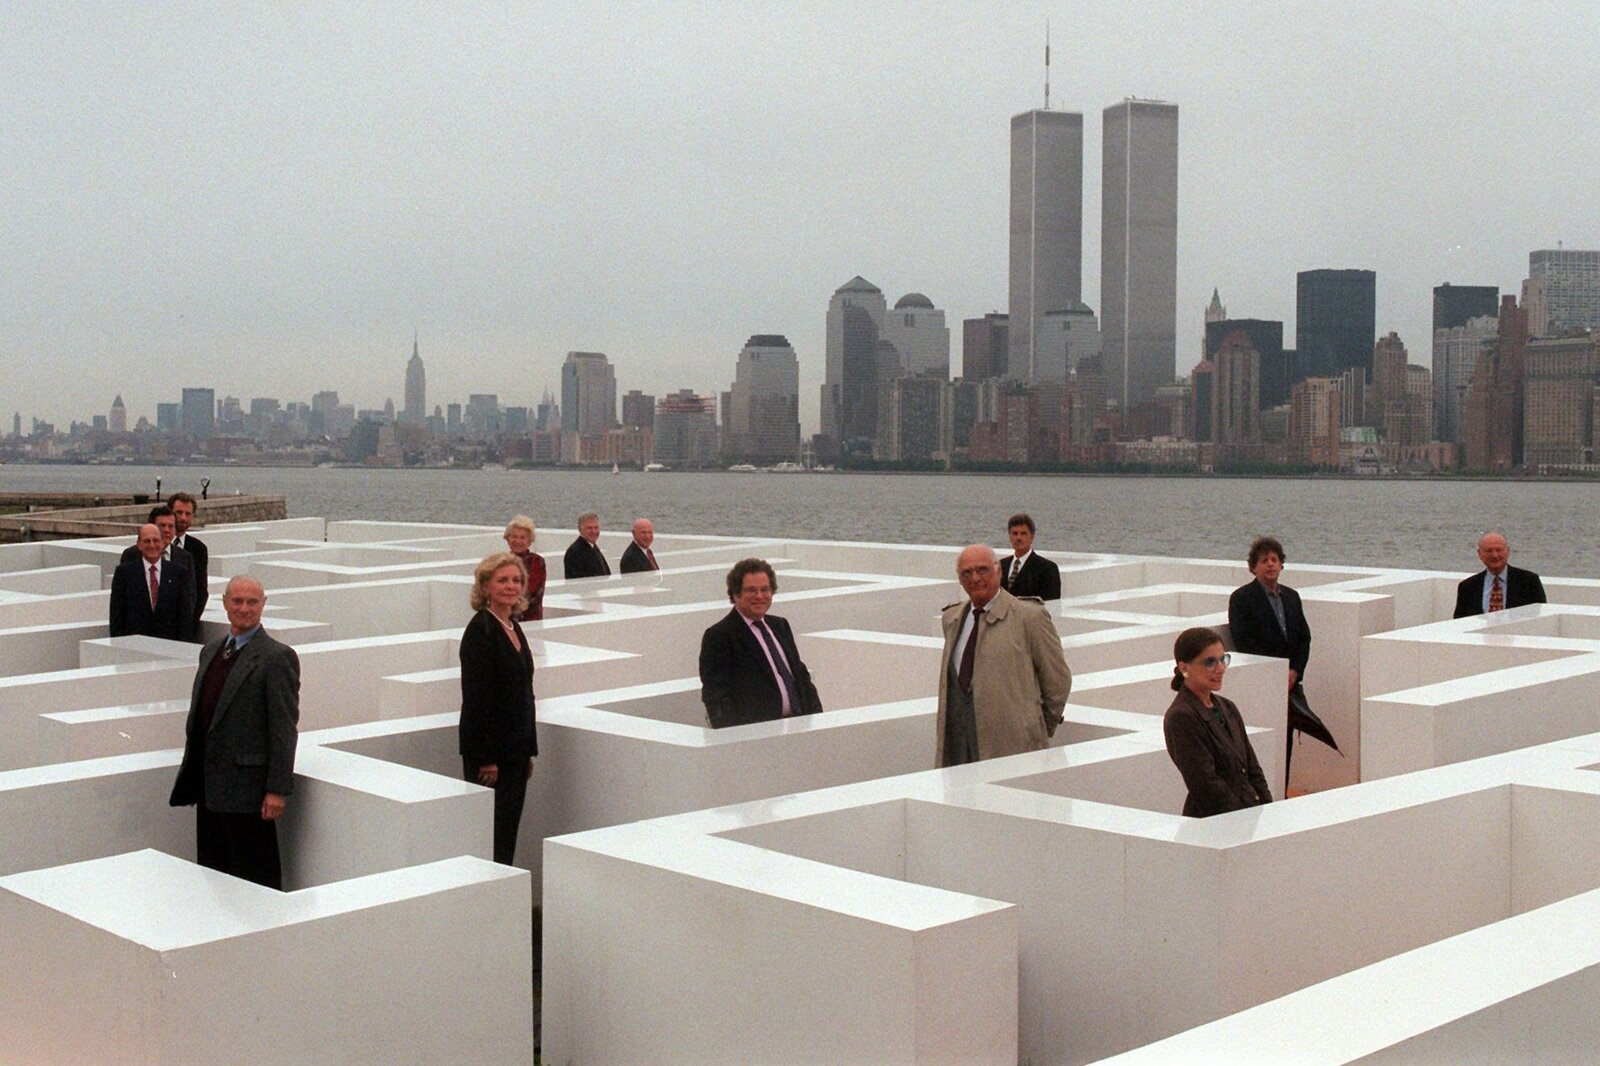 Prominent Jewish-Americans, including Ginsburg, pose for a photograph while standing in a maze on Ellis Island in New York on Sept. 18, 1996, as part of a project by Frederic Brenner.